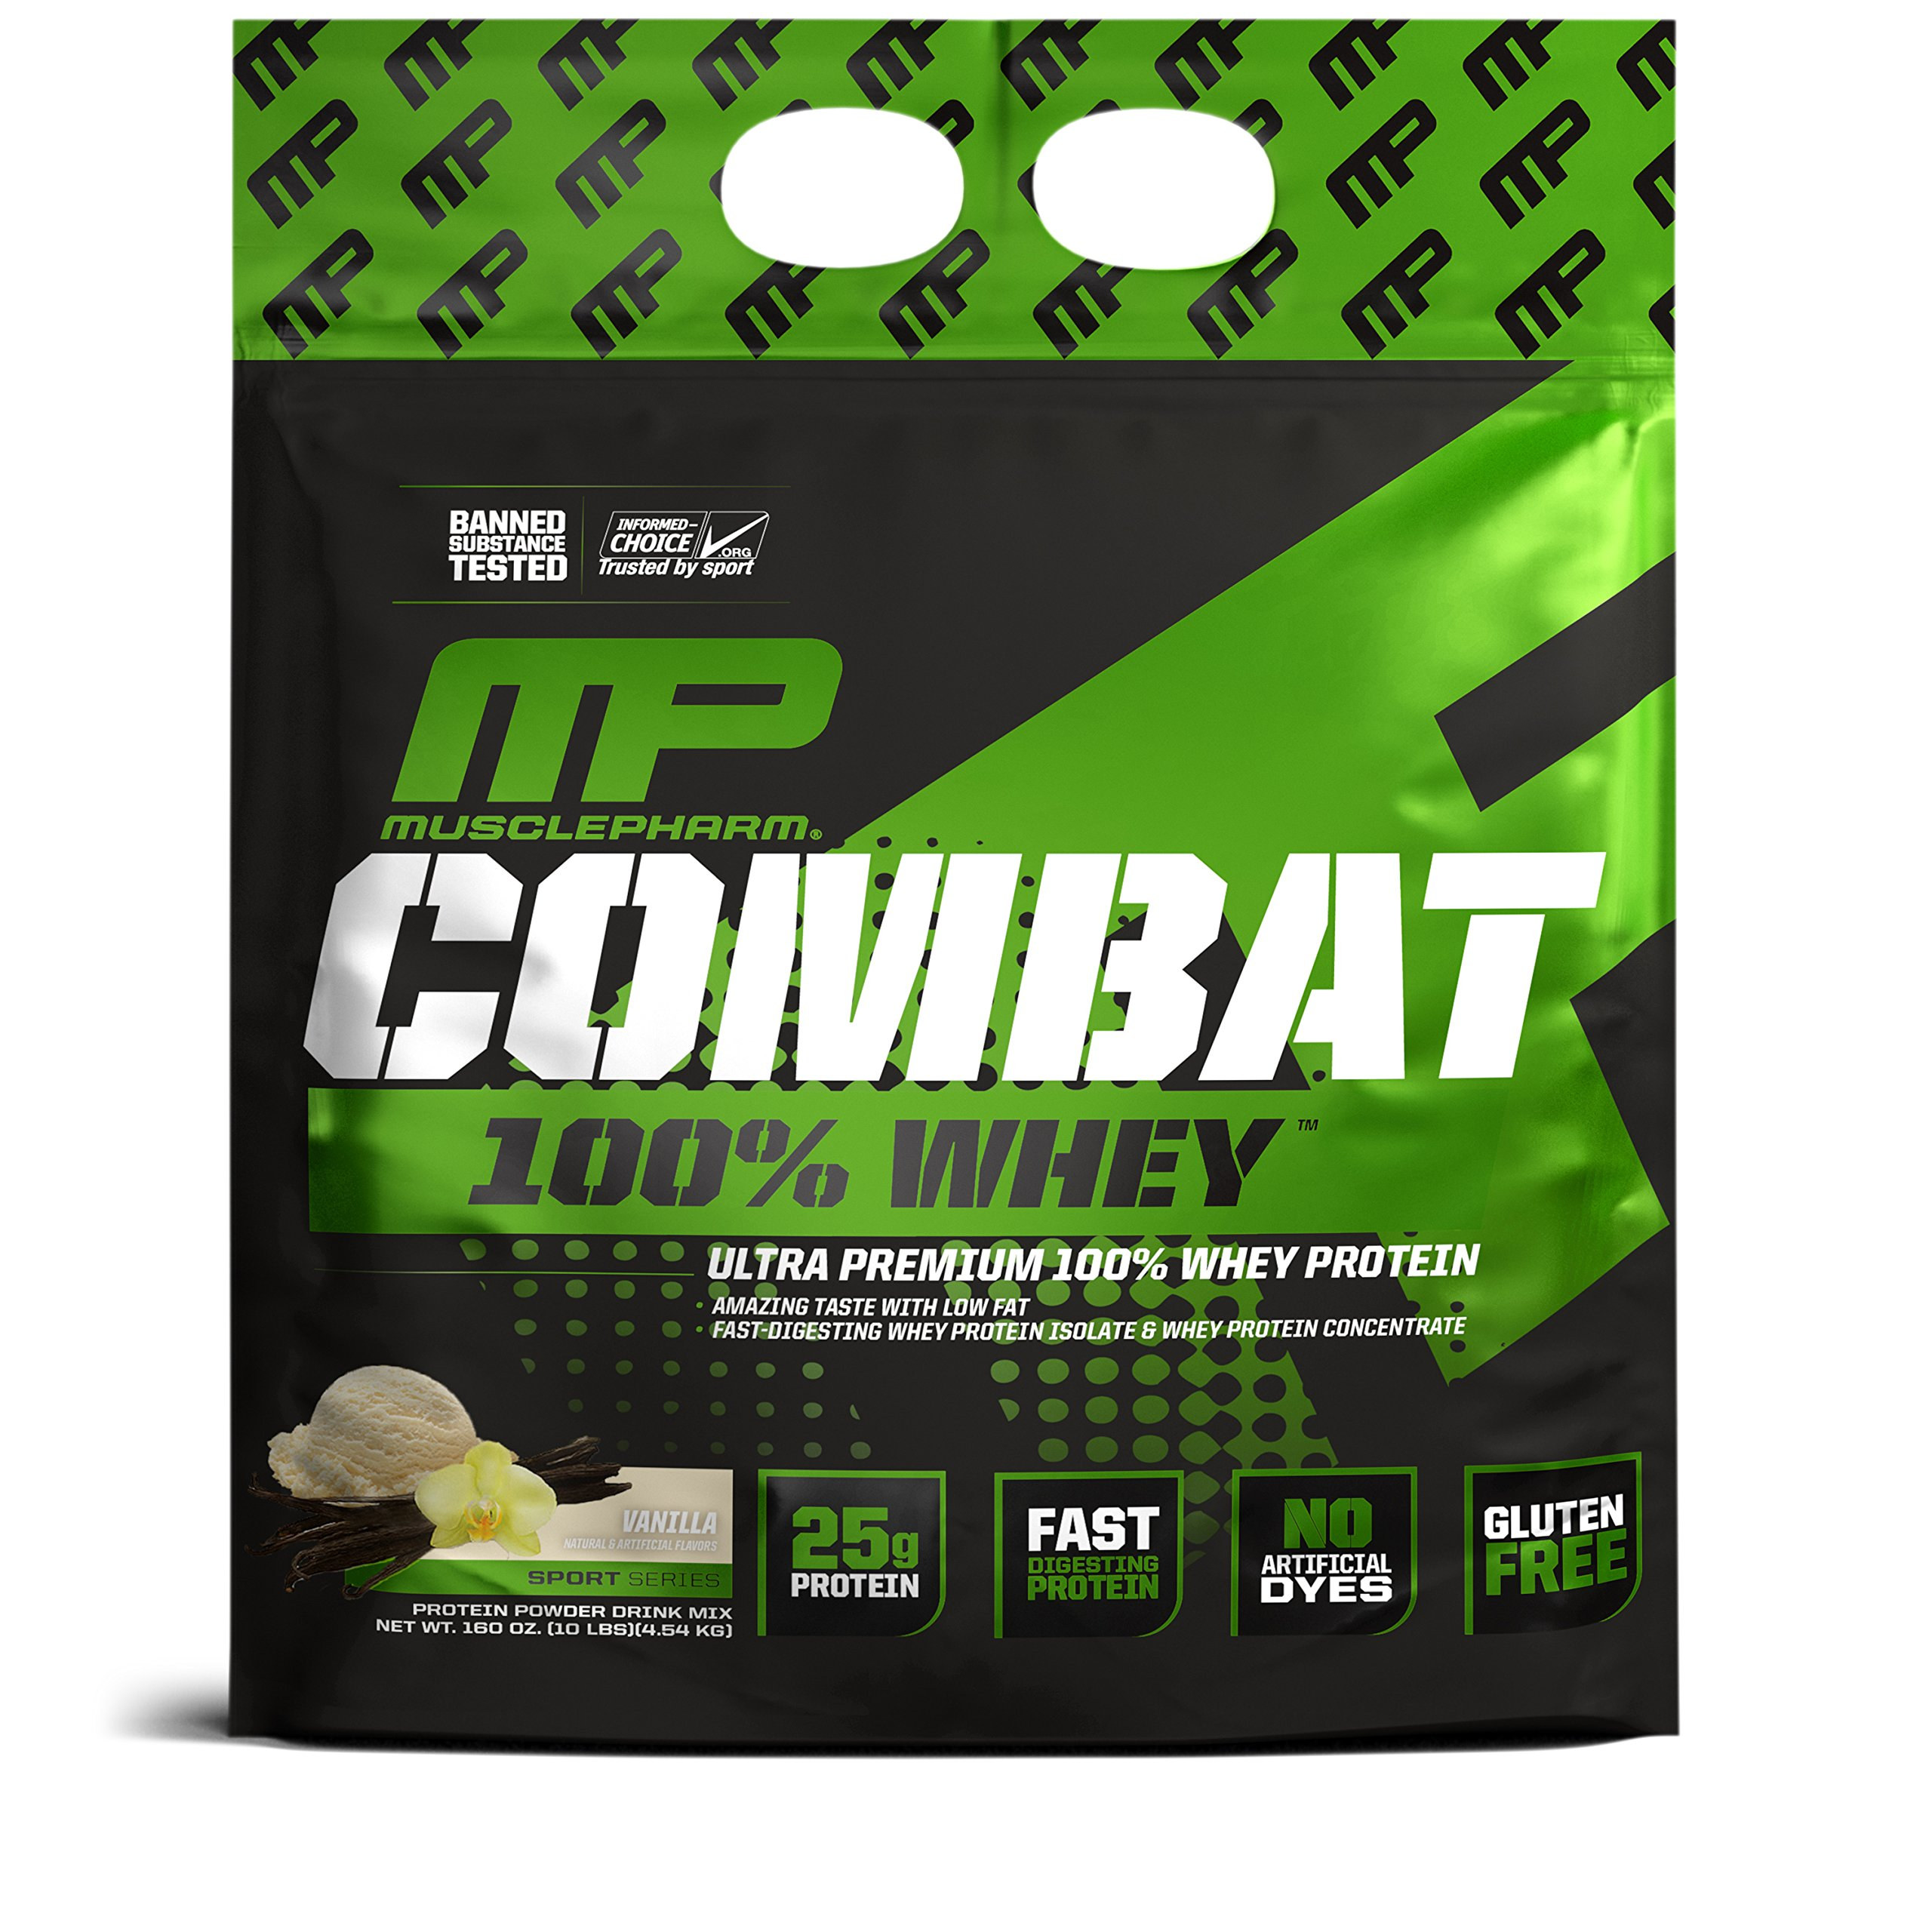 MusclePharm Combat 100% Whey, Muscle-Building Whey Protein Powder, 25 g of Ultra-Premium, Gluten-Free, Low-Fat Blend of Fast-Digesting Whey Protein, Vanilla, 10-Pound, 146 Servings